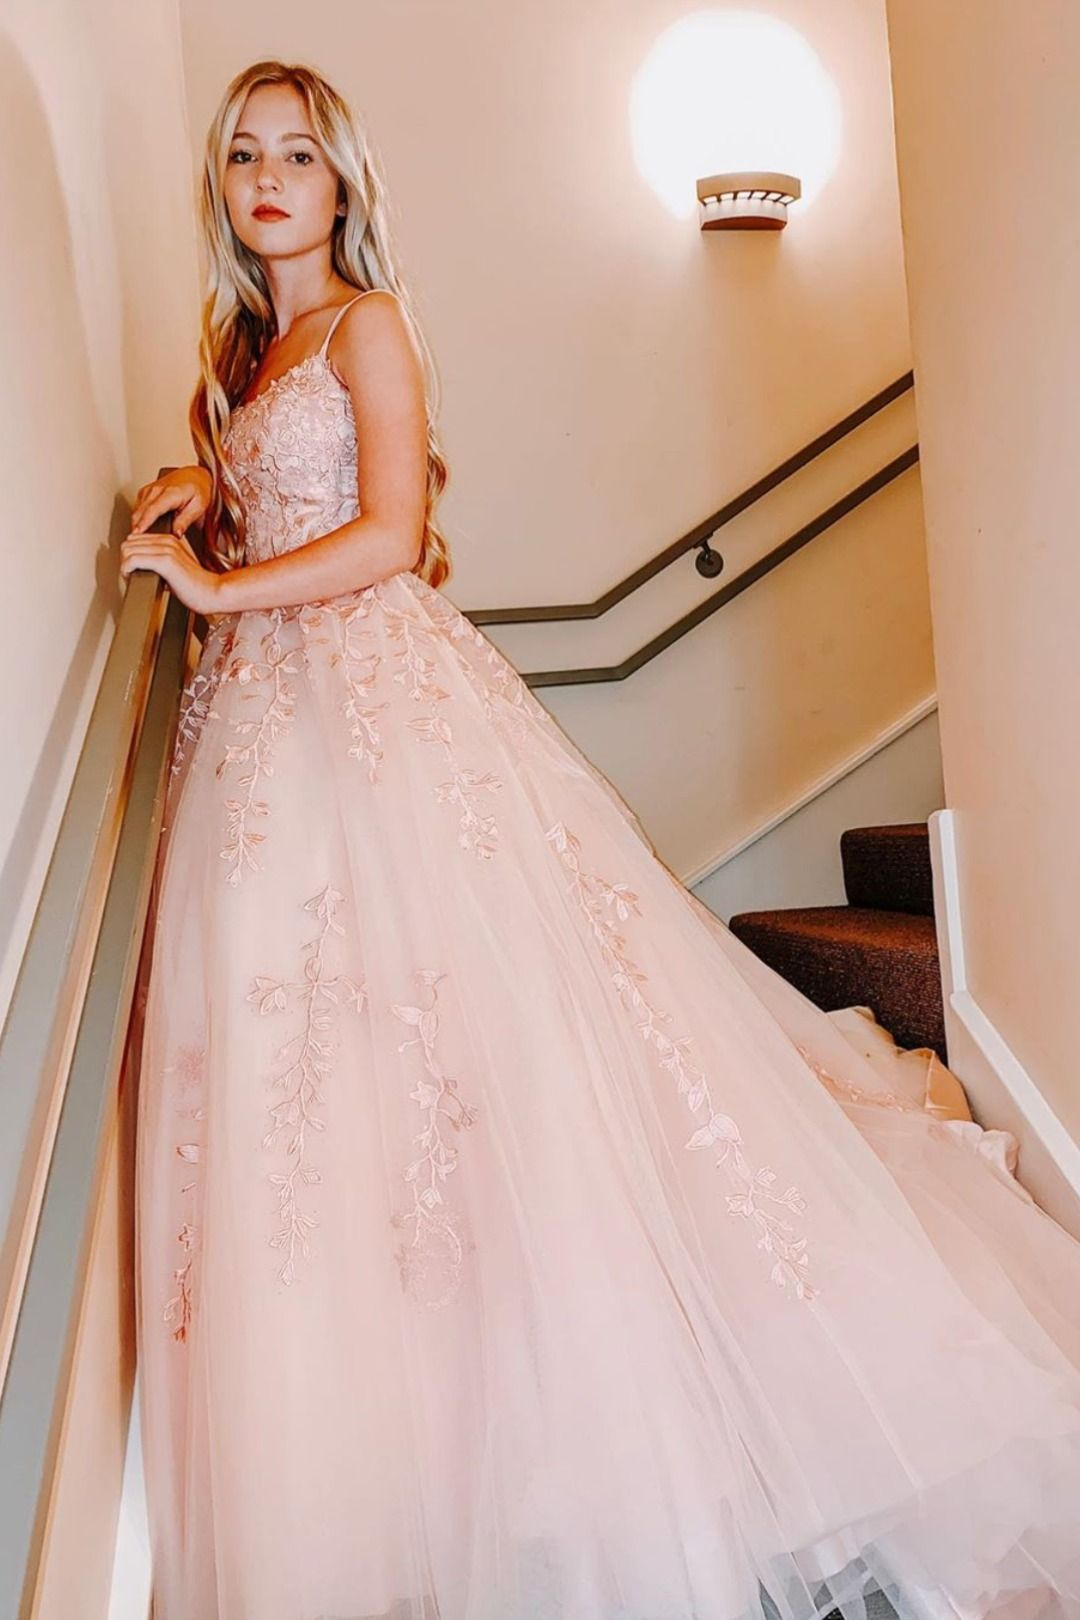 Princess Beaded Long Prom Dresses With Lace Appliques Champagne Prom Dress Lace Prom Gown Cheap Prom Dresses Online [ 1620 x 1080 Pixel ]